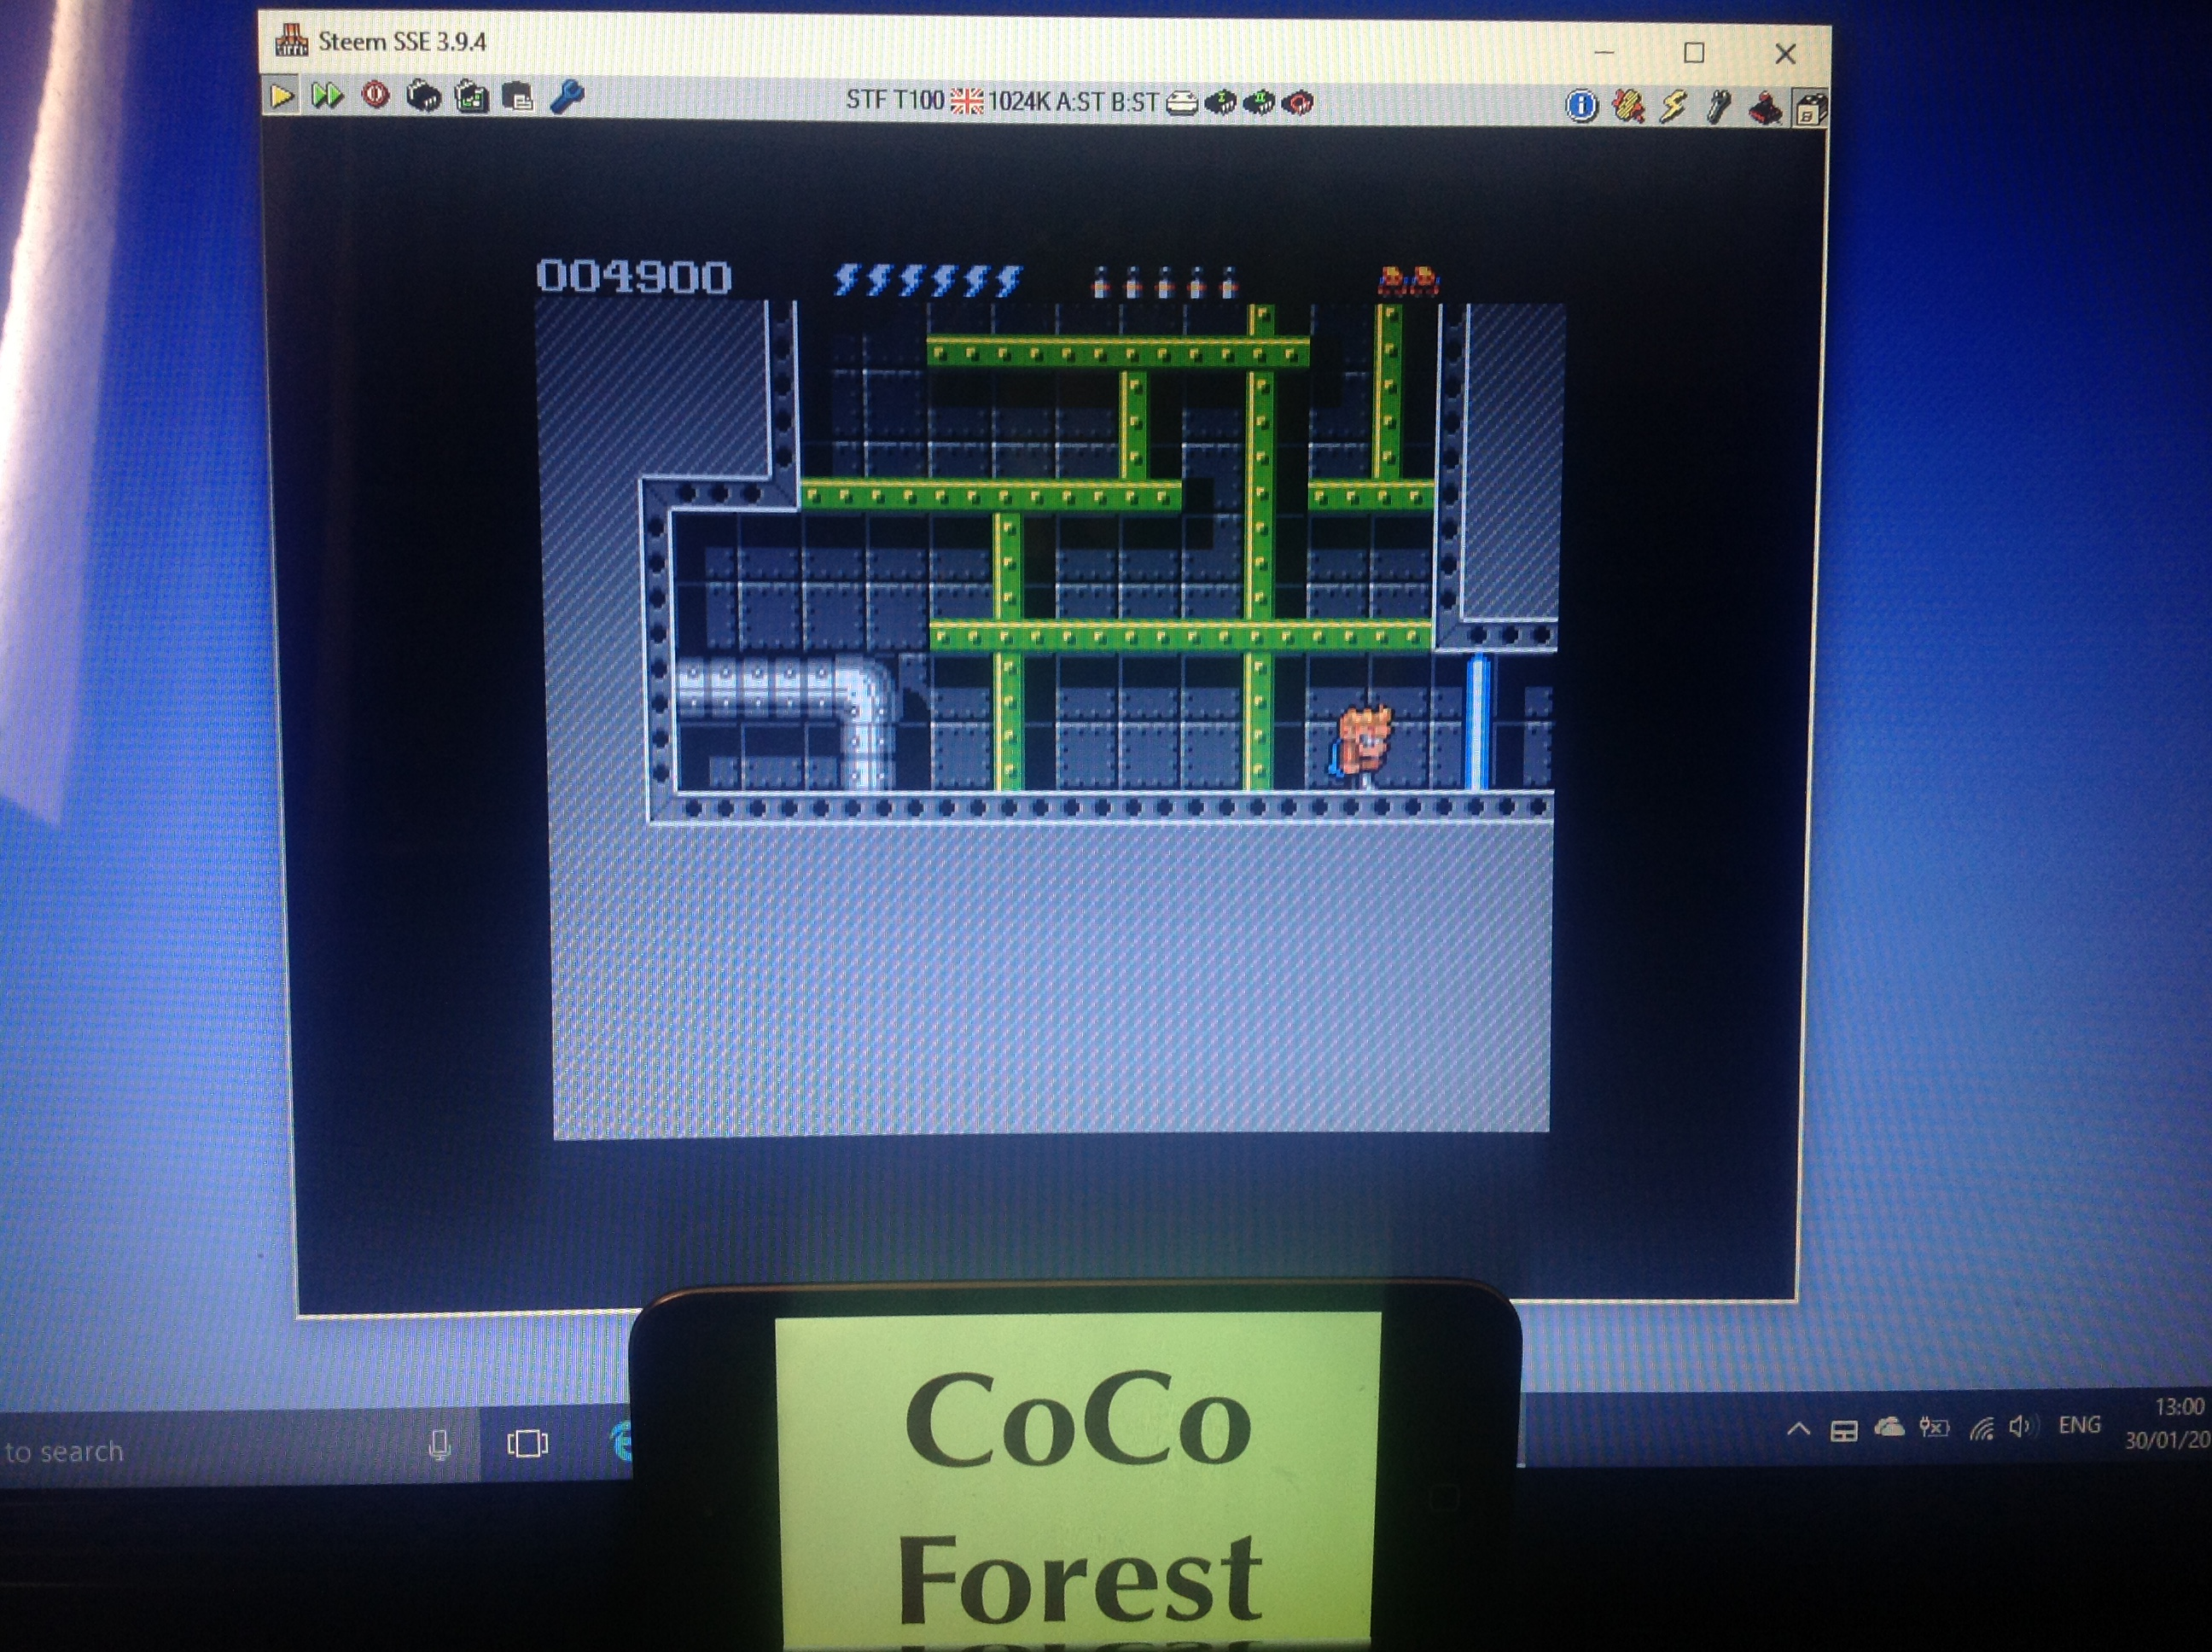 CoCoForest: Rick Dangerous II (Atari ST Emulated) 4,900 points on 2018-01-30 07:03:24